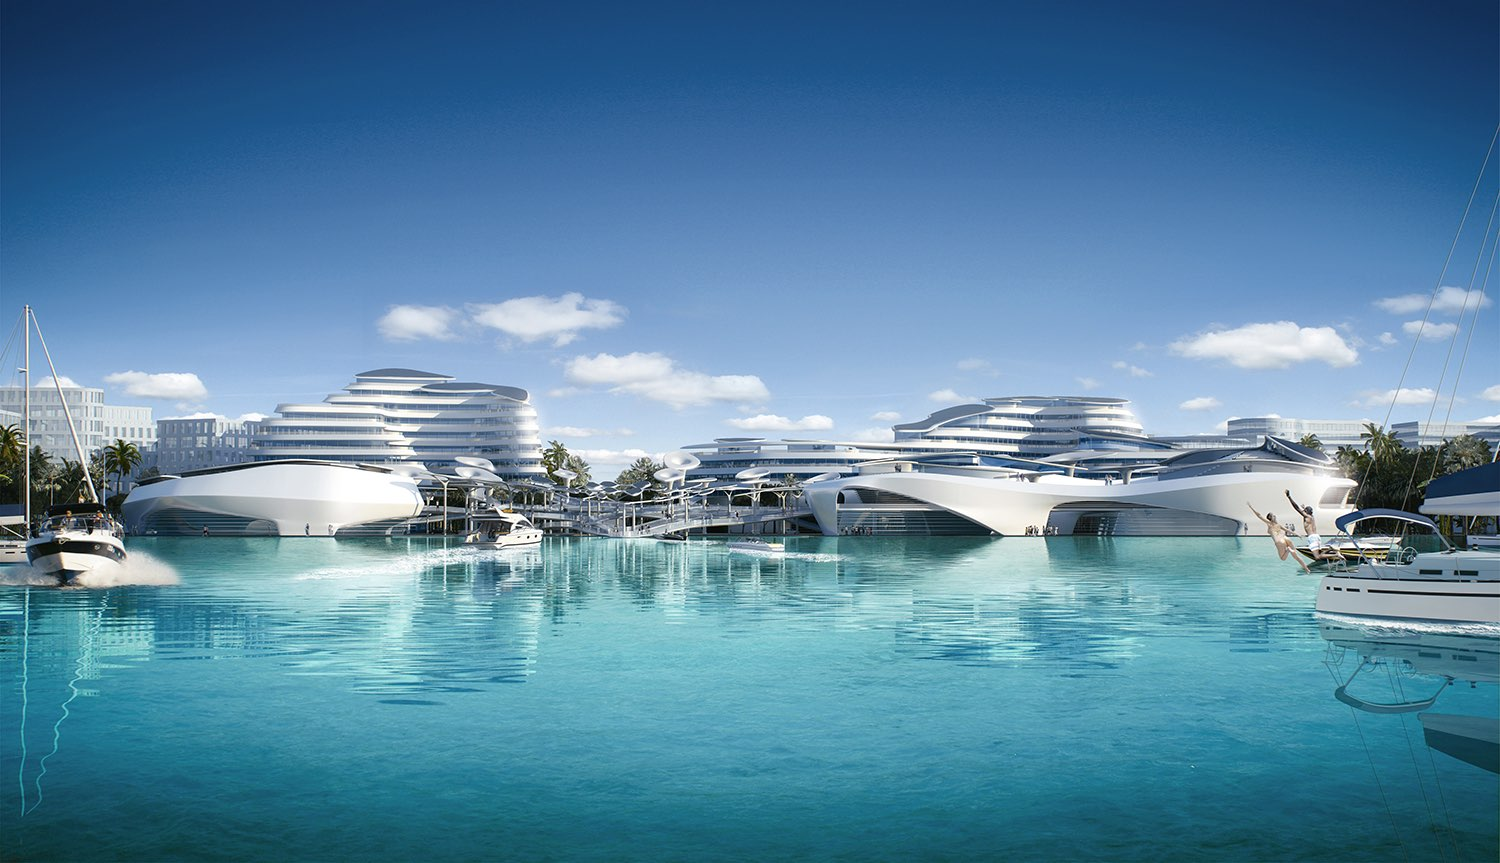 Oceans-Paradise-designed-by-CAA-Architects-003